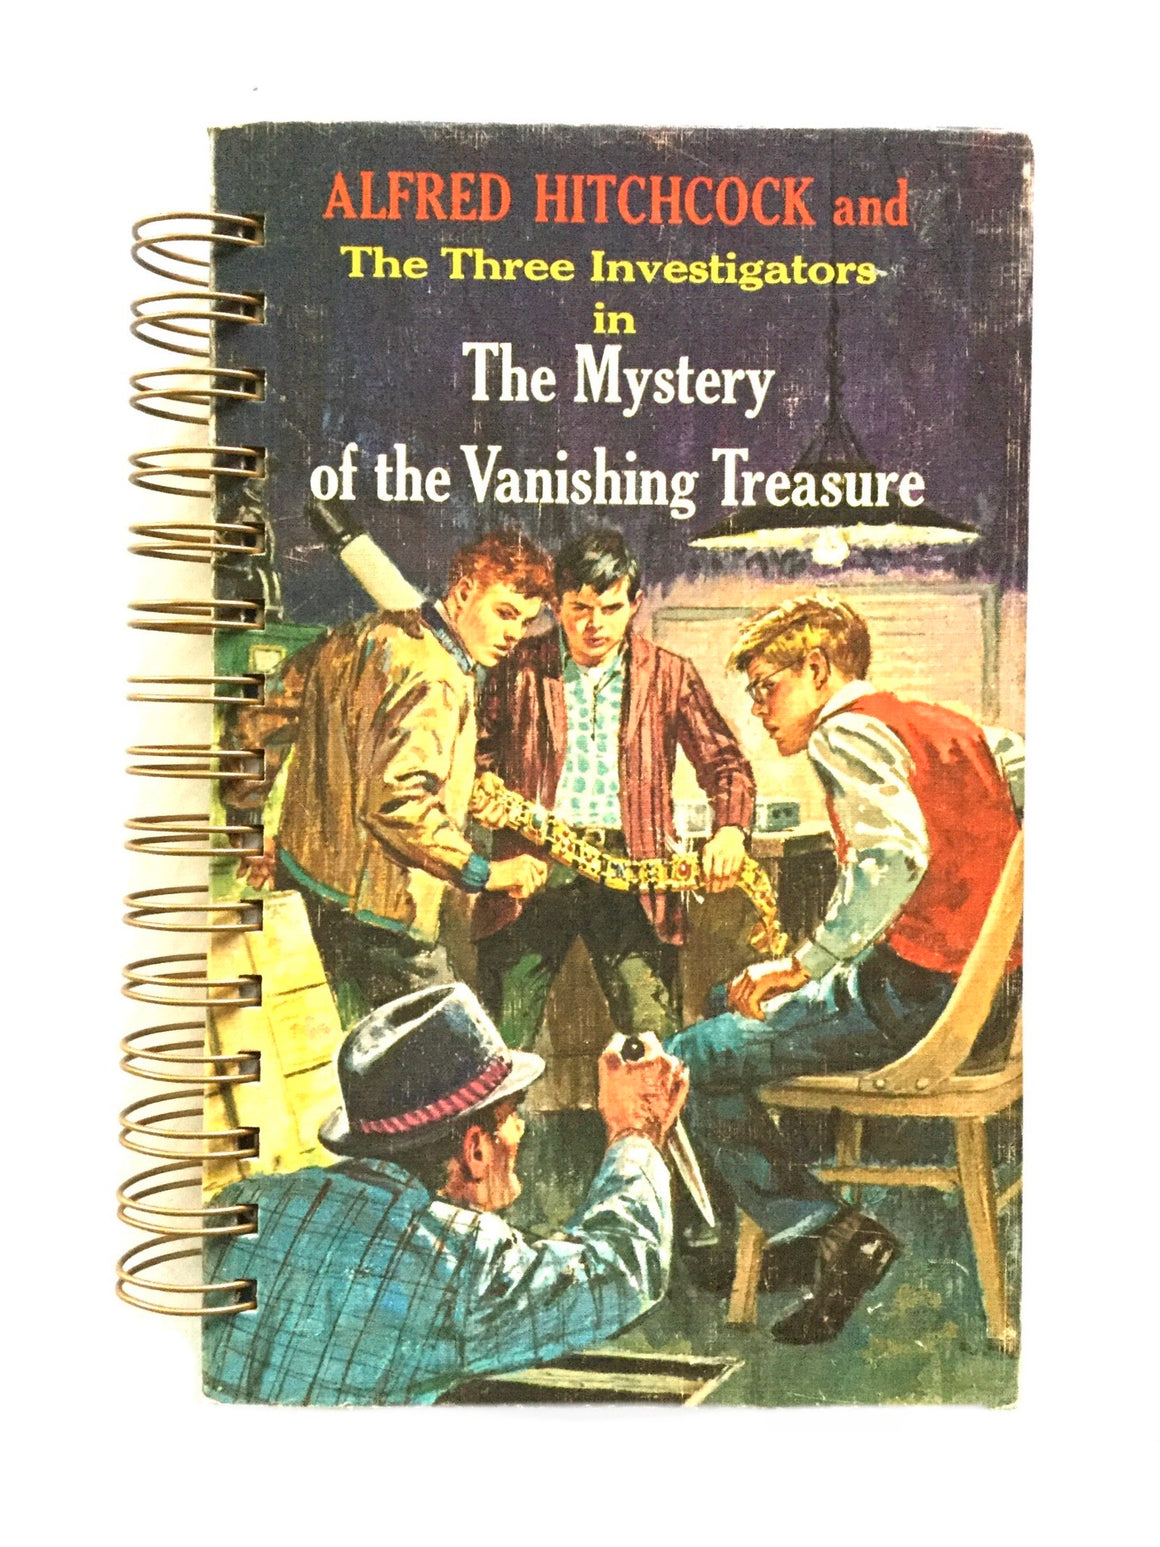 Three Investigators in The Mystery of the Vanishing Treasure-Red Barn Collections